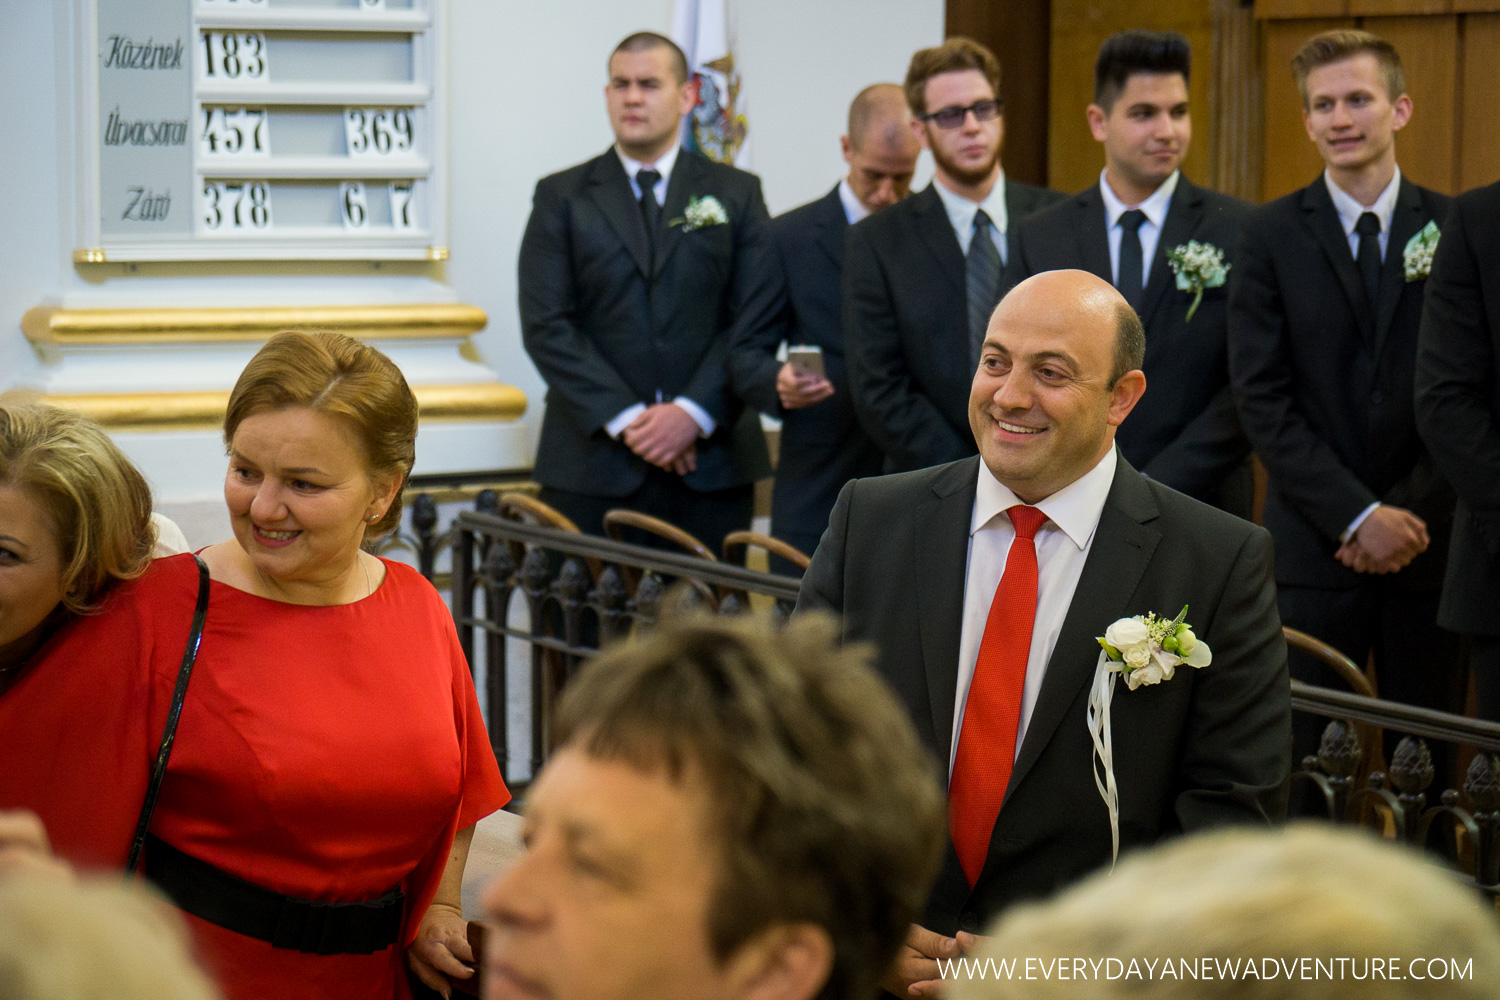 [SqSp1500-001] Budapest - Inez and Arni's Wedding!-7.jpg